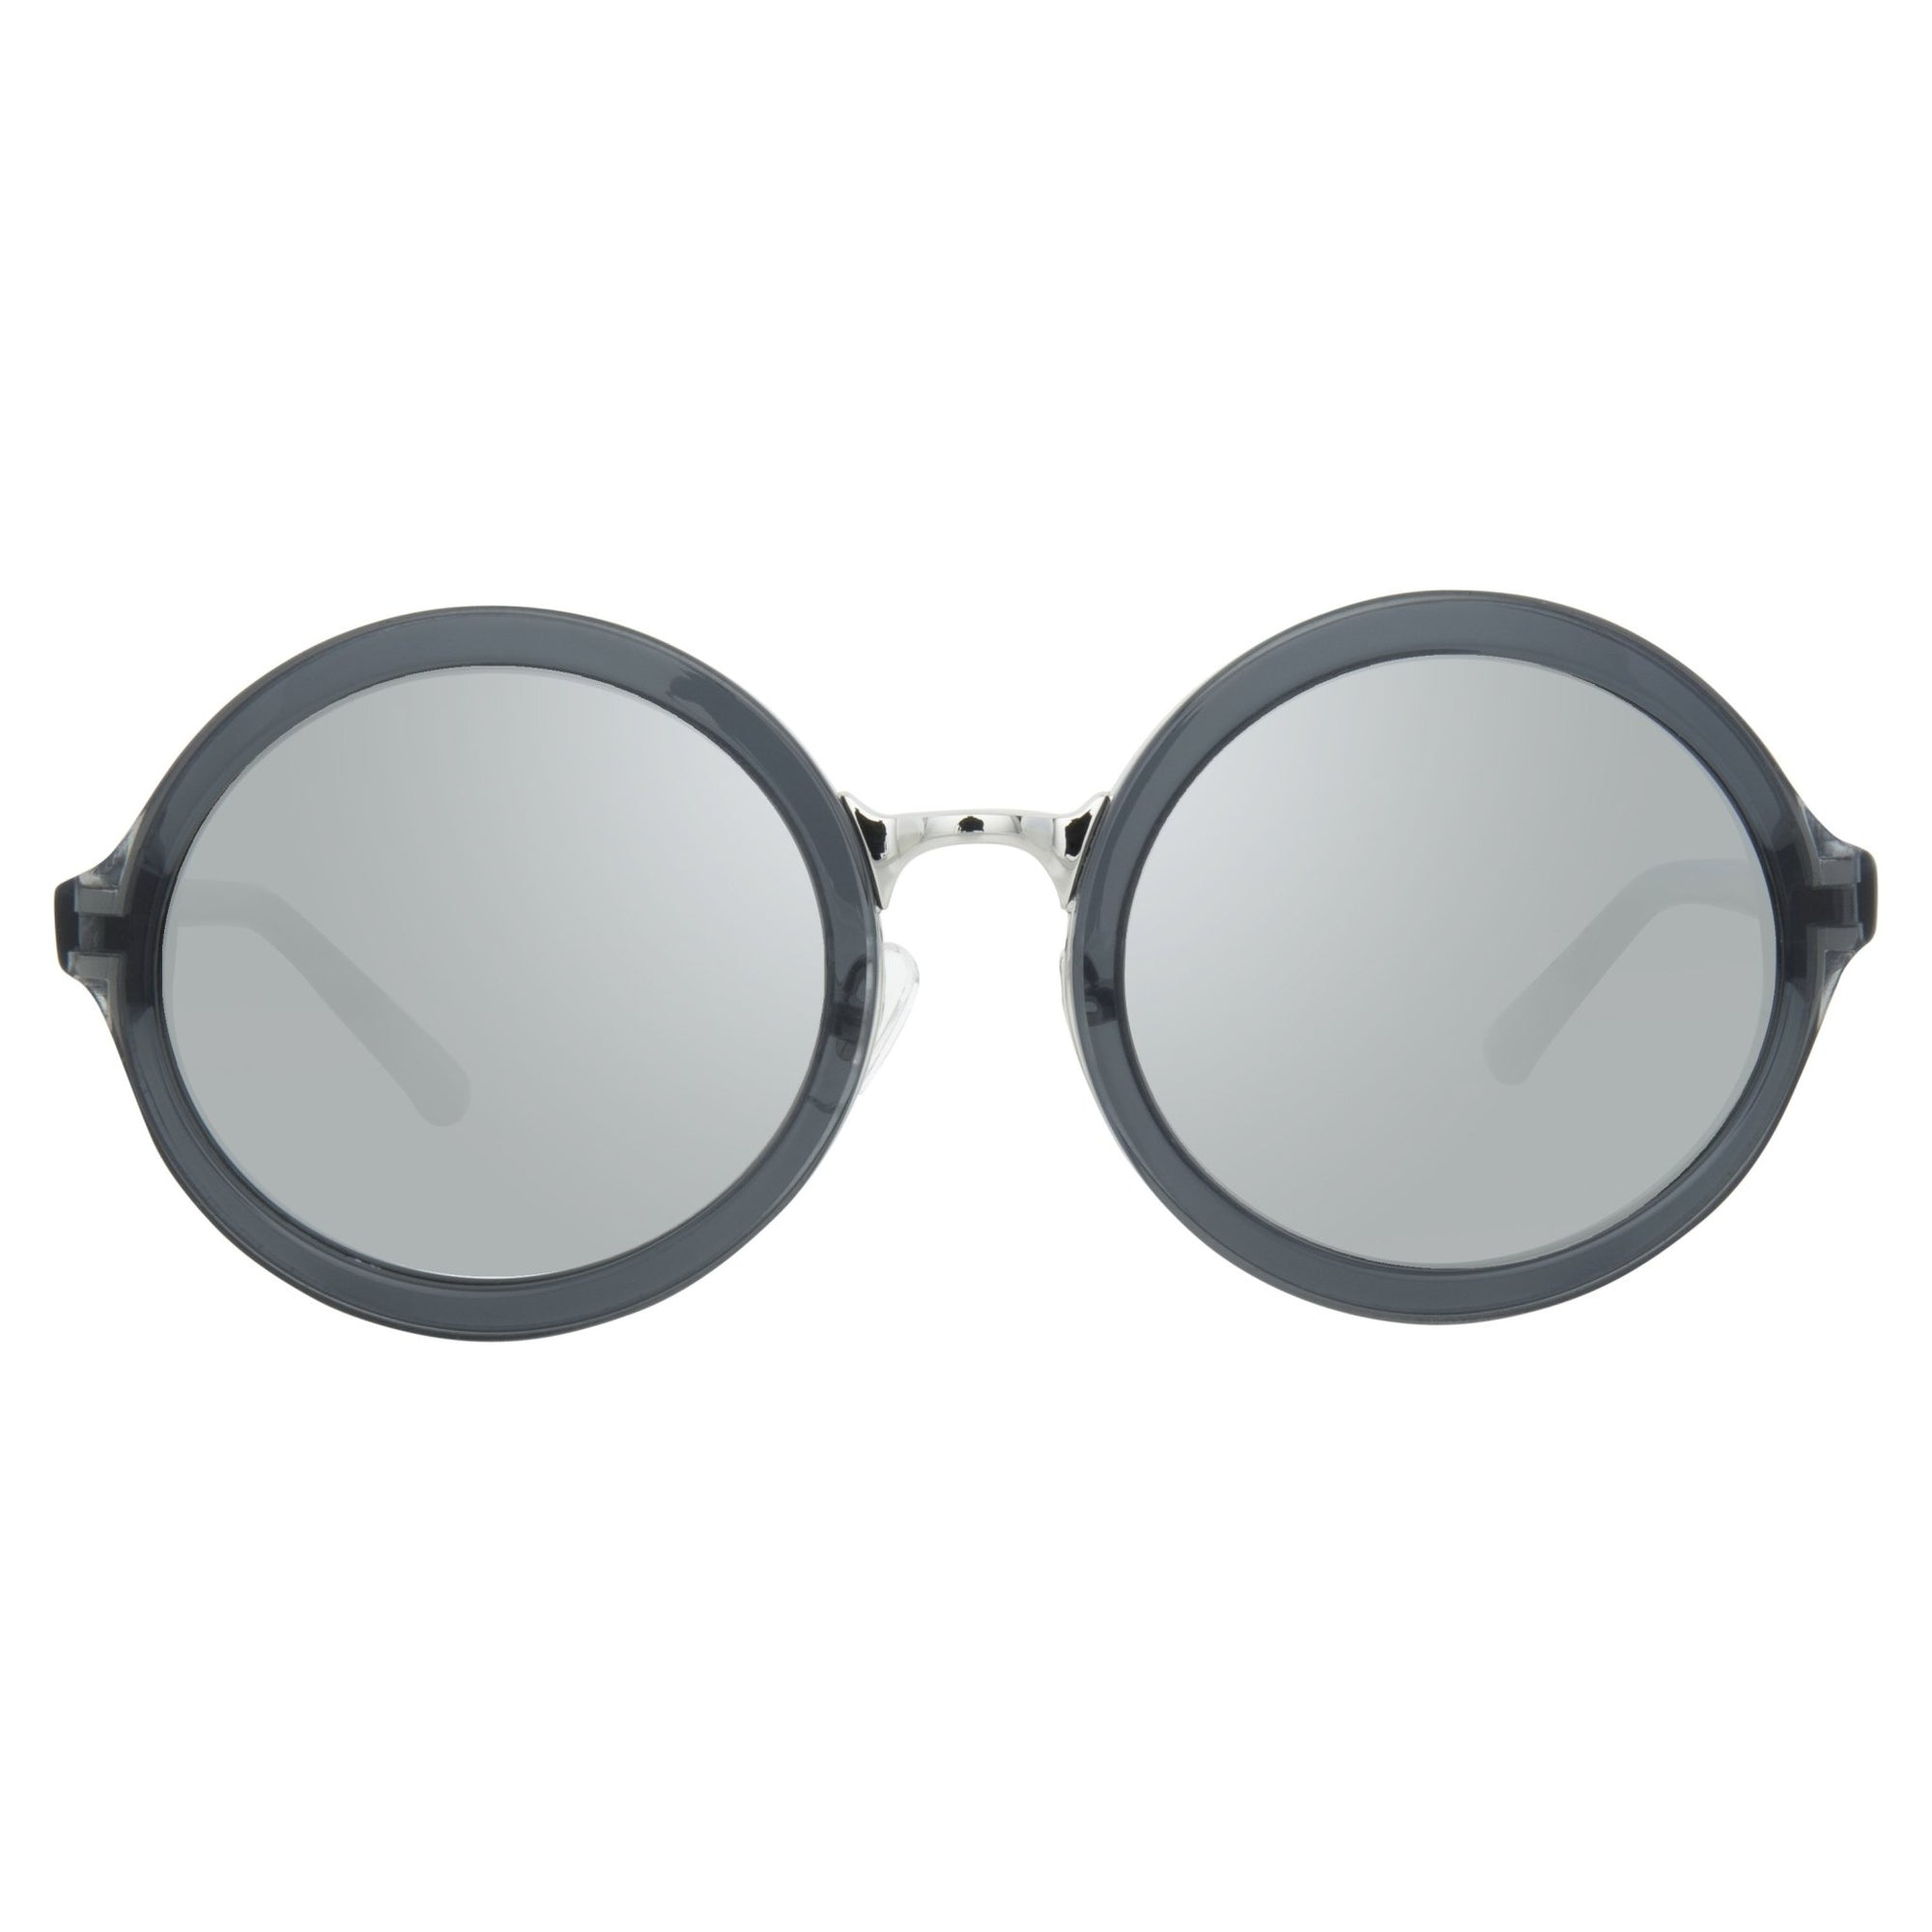 Phillip Lim Sunglasses with Round Grey Nickel and Silver Mirror Lenses Category 3 - PL11C33SUN - Watches & Crystals